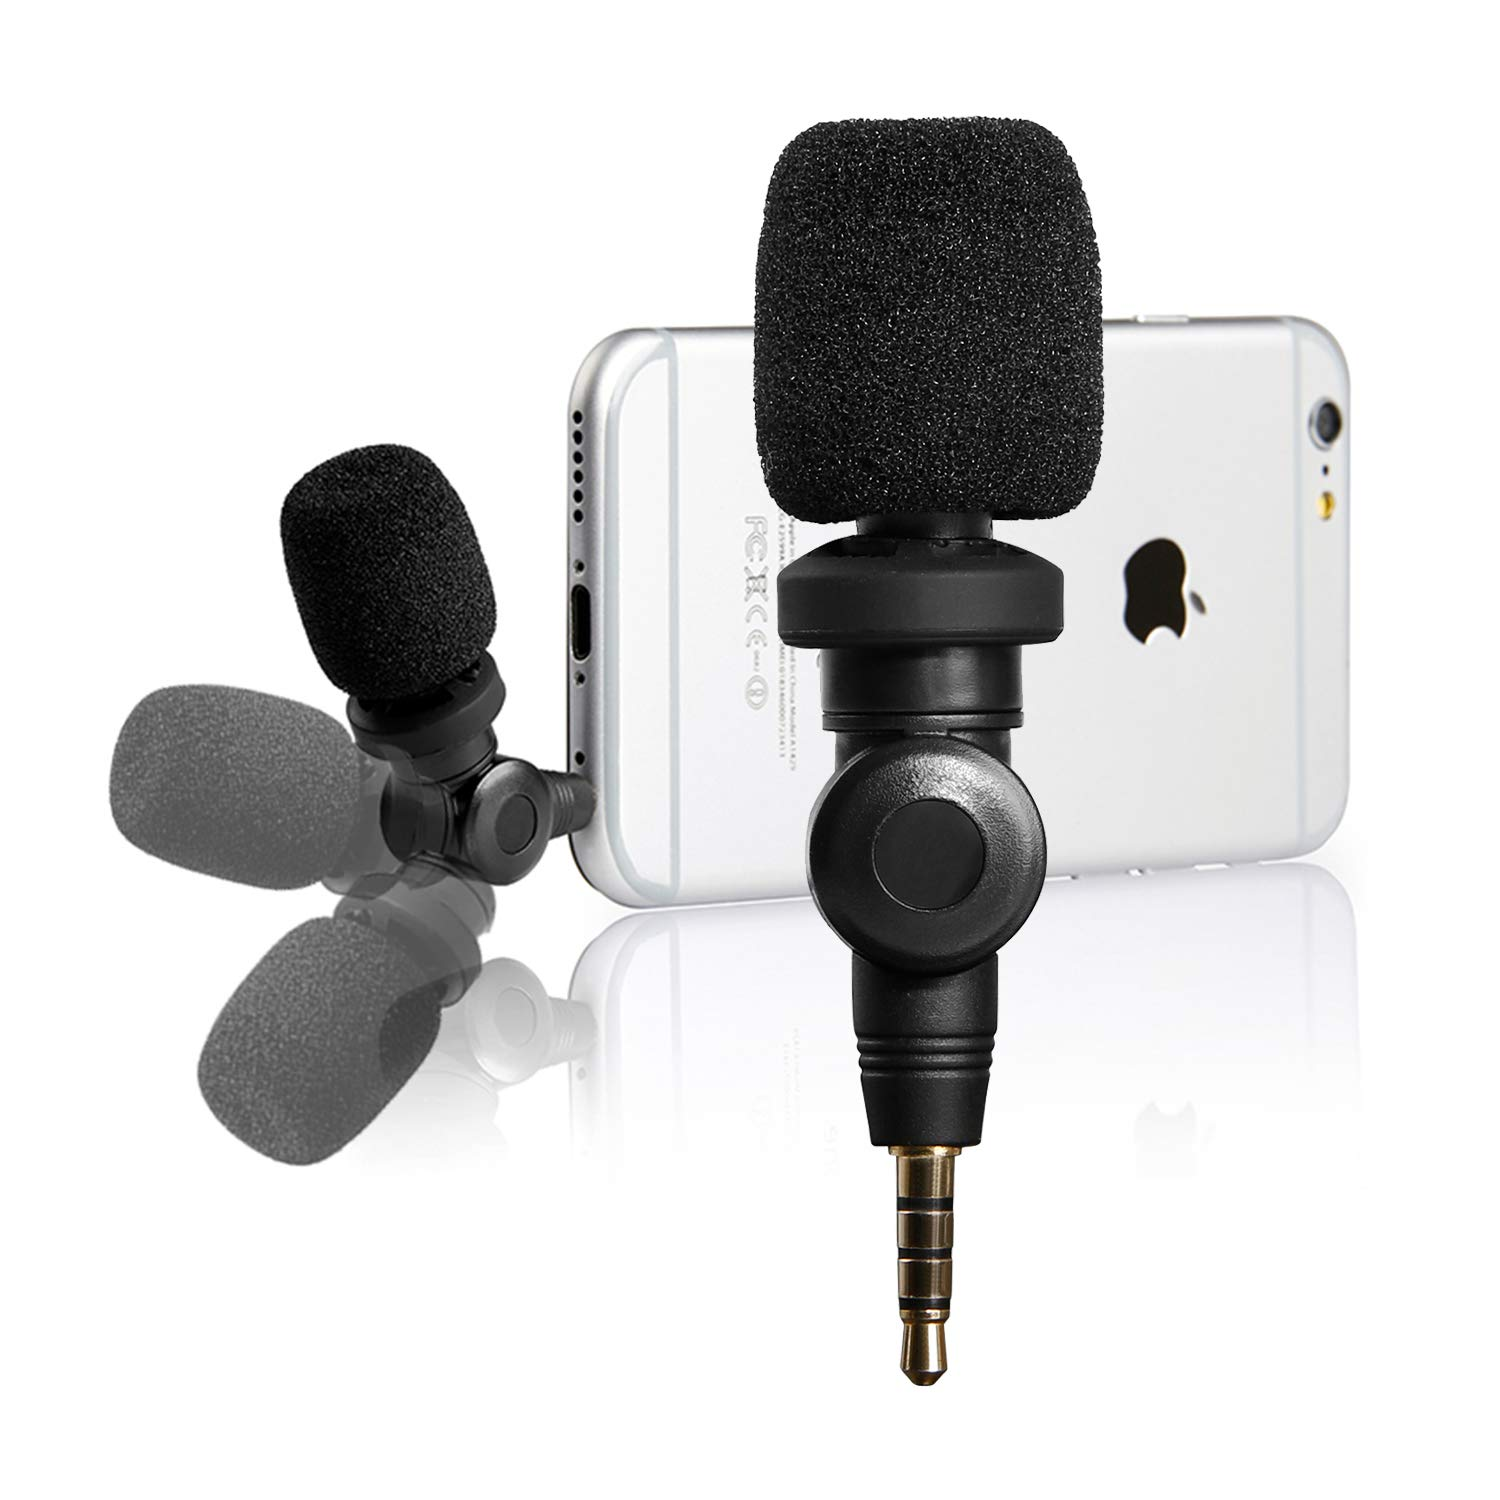 Saramonic Flexible Microphone with High Sensitivity for Apple iOS iPhone X  8 7 6 iPad Podcast Vlog YouTube Facebook Livestream (3 5mm TRRS)